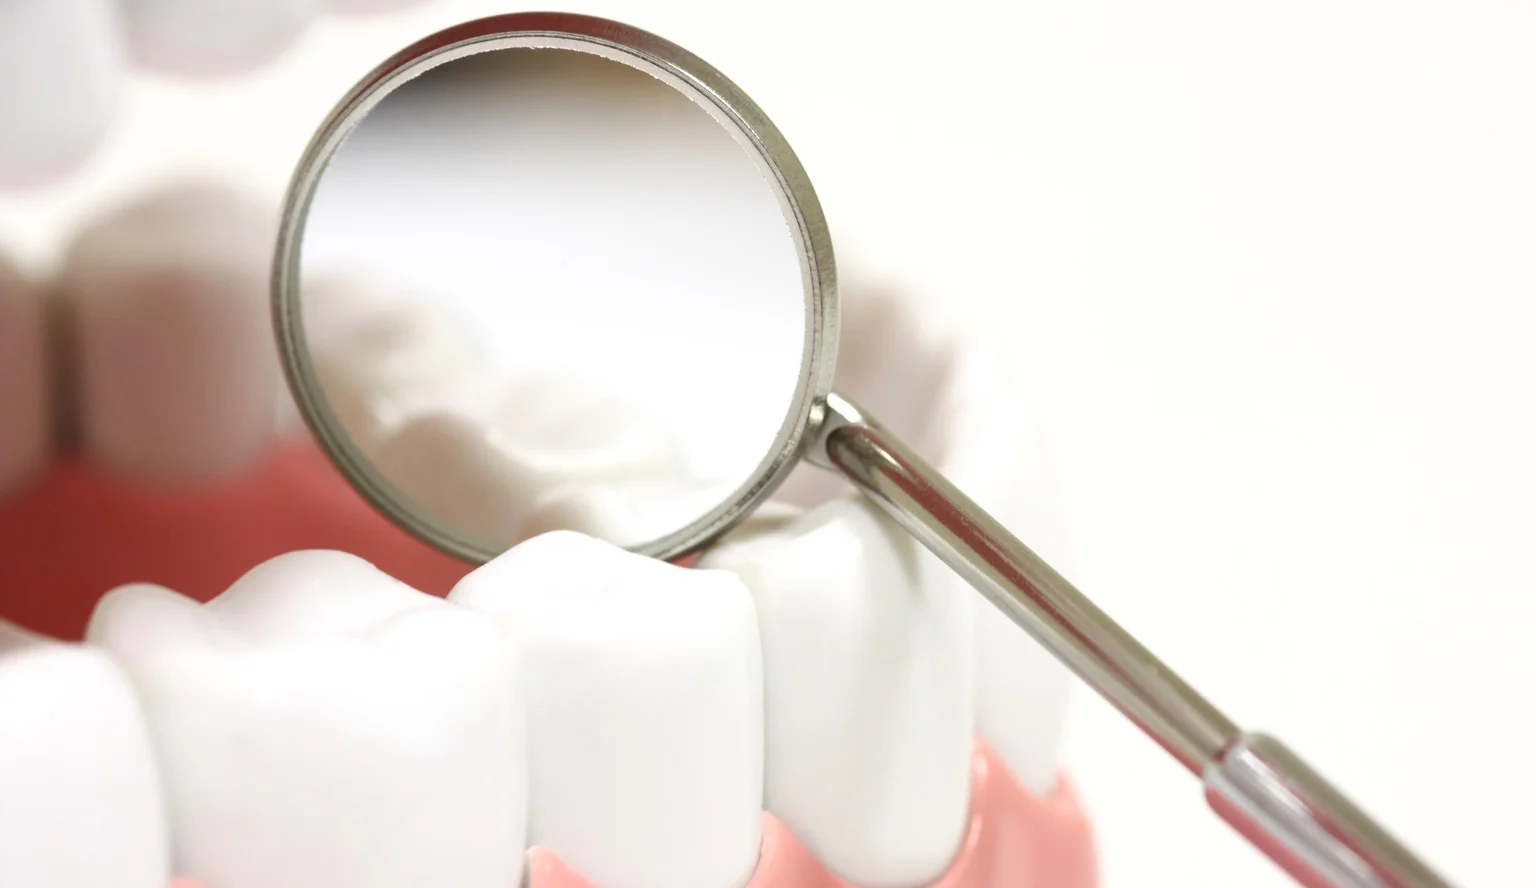 Dental Crown Types, Procedure, When It's Done, Cost, and Aftercare